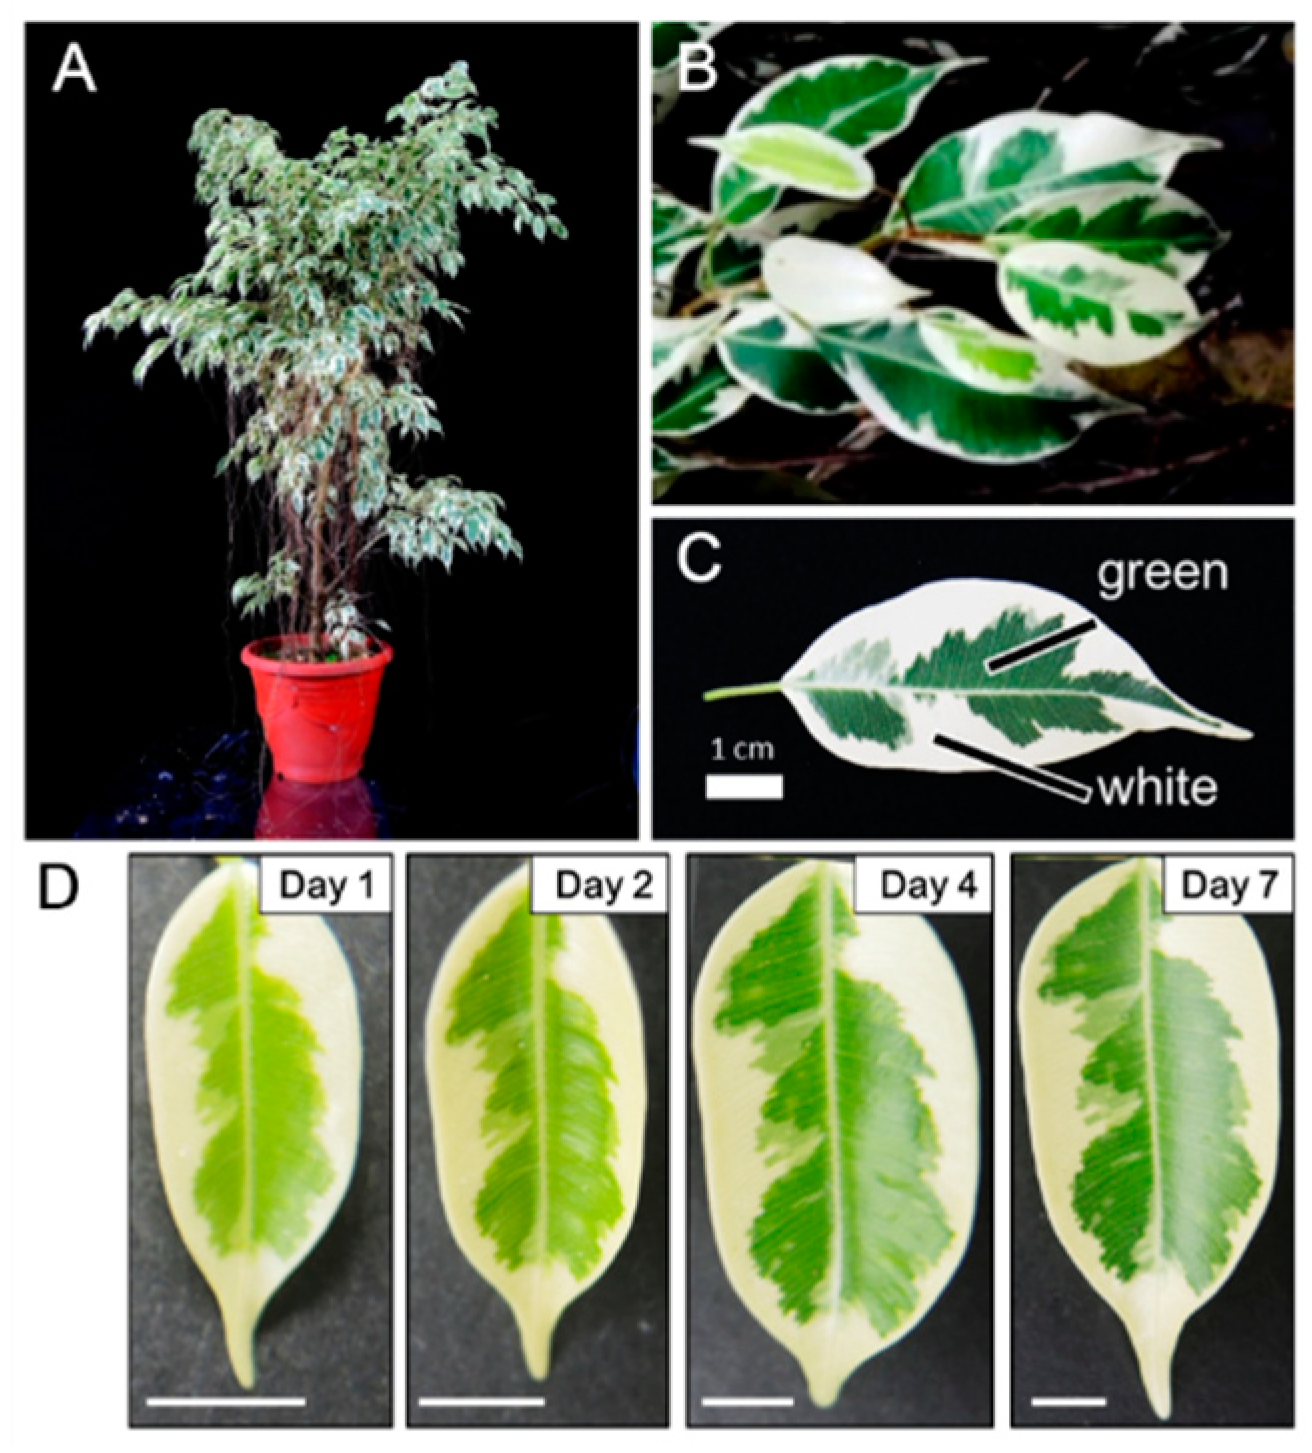 IJMS | Free Full-Text | Transcriptome Profile of the ... Variegated Houseplants Med Leaf Identification on